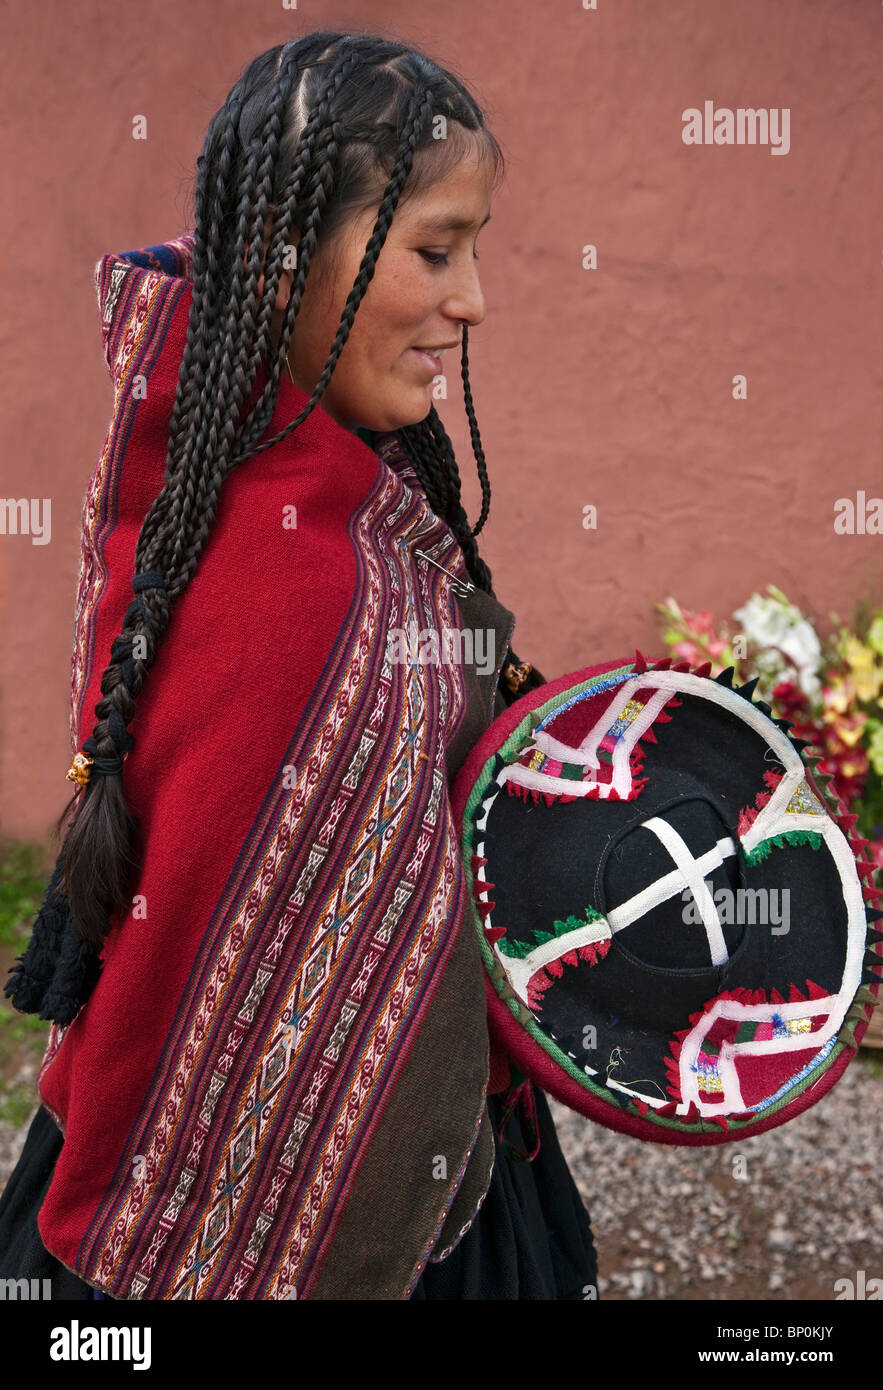 Peru, A young woman in traditional Indian costume with long braided hair. - Stock Image